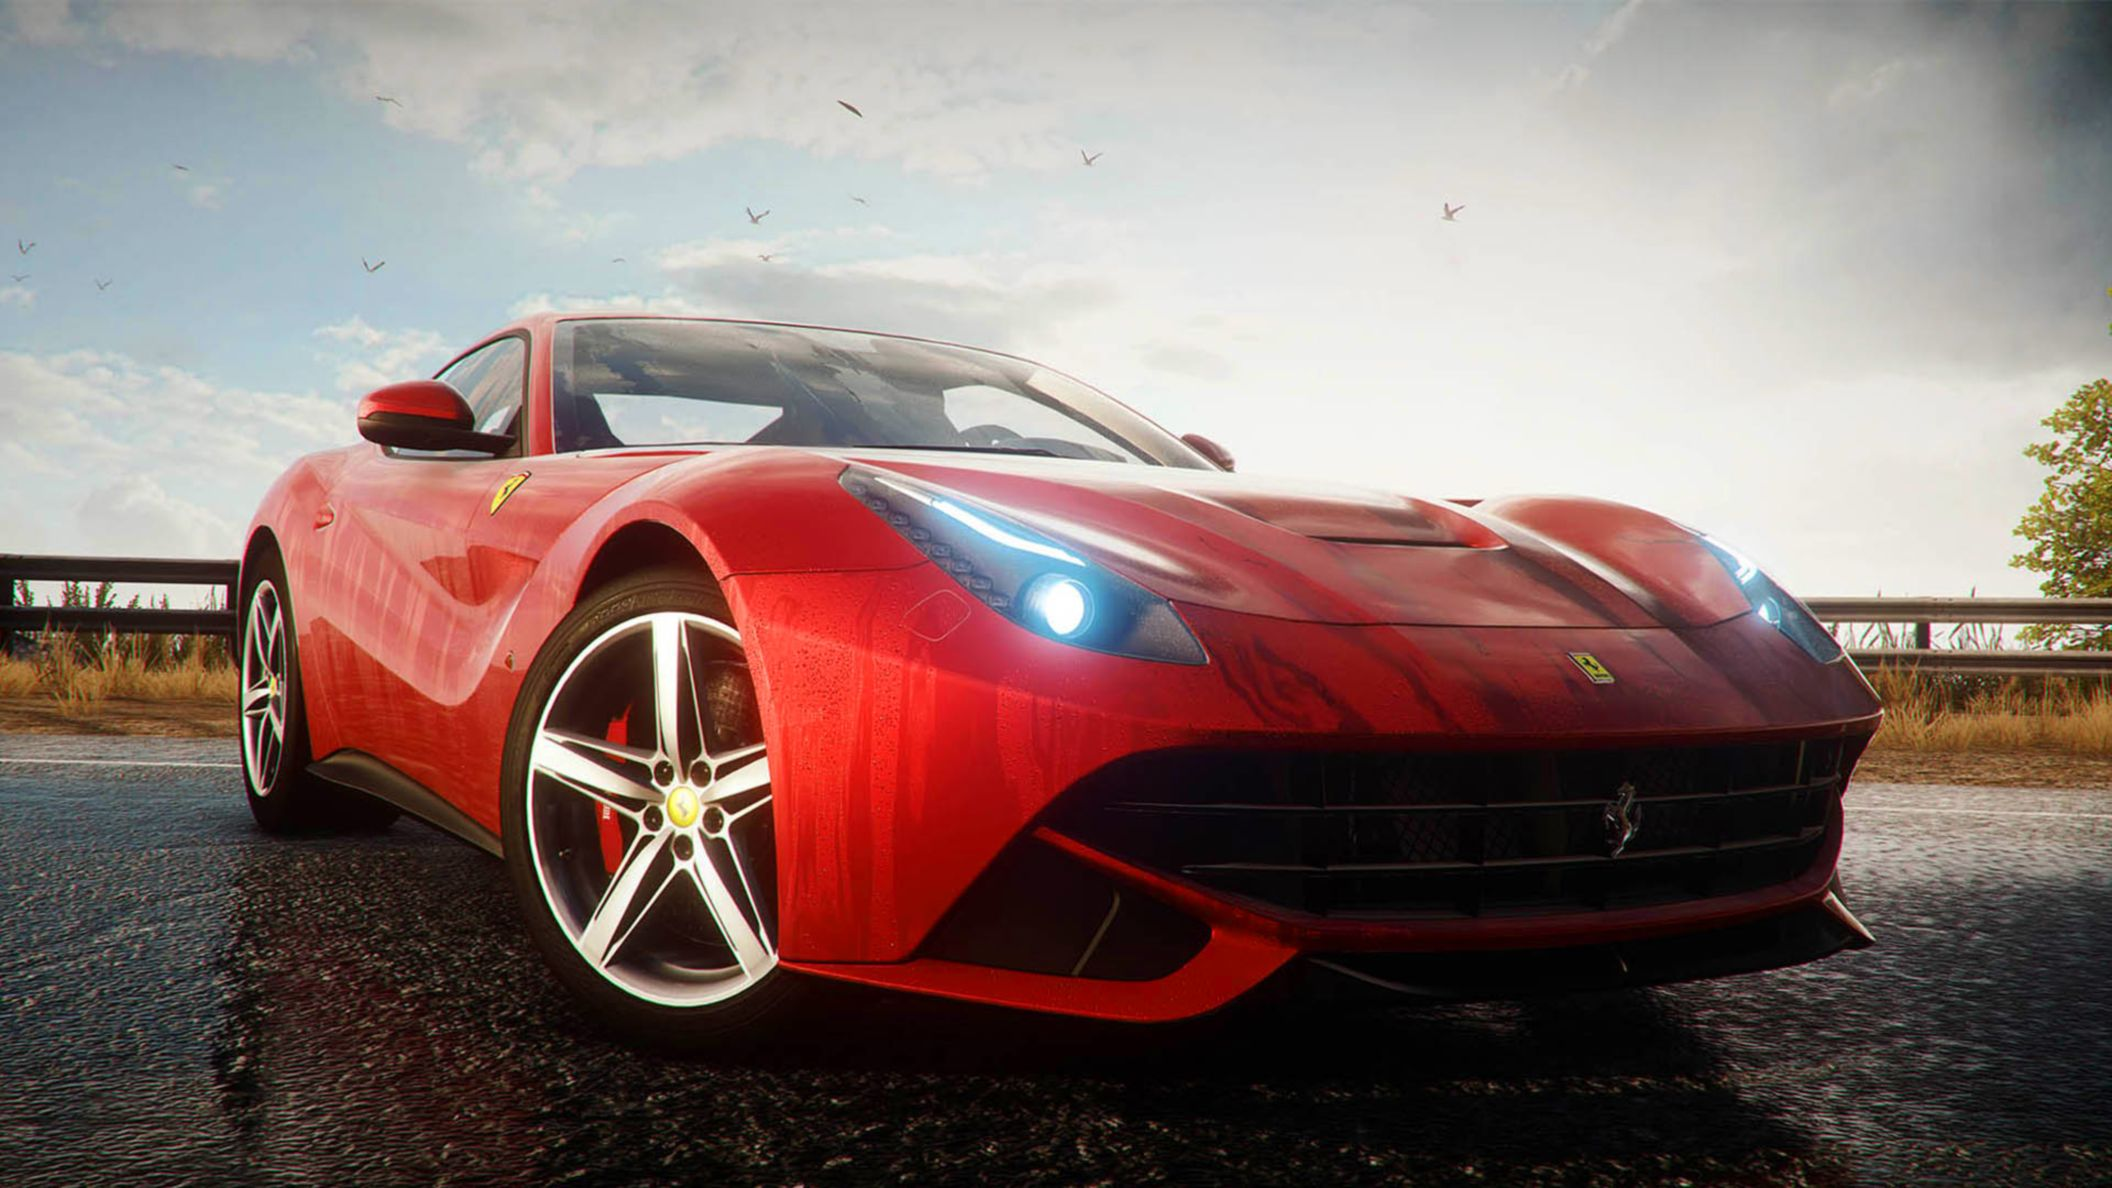 Download free HD Ferrari F12 Need For Speed Rivals HD Wallpaper, image